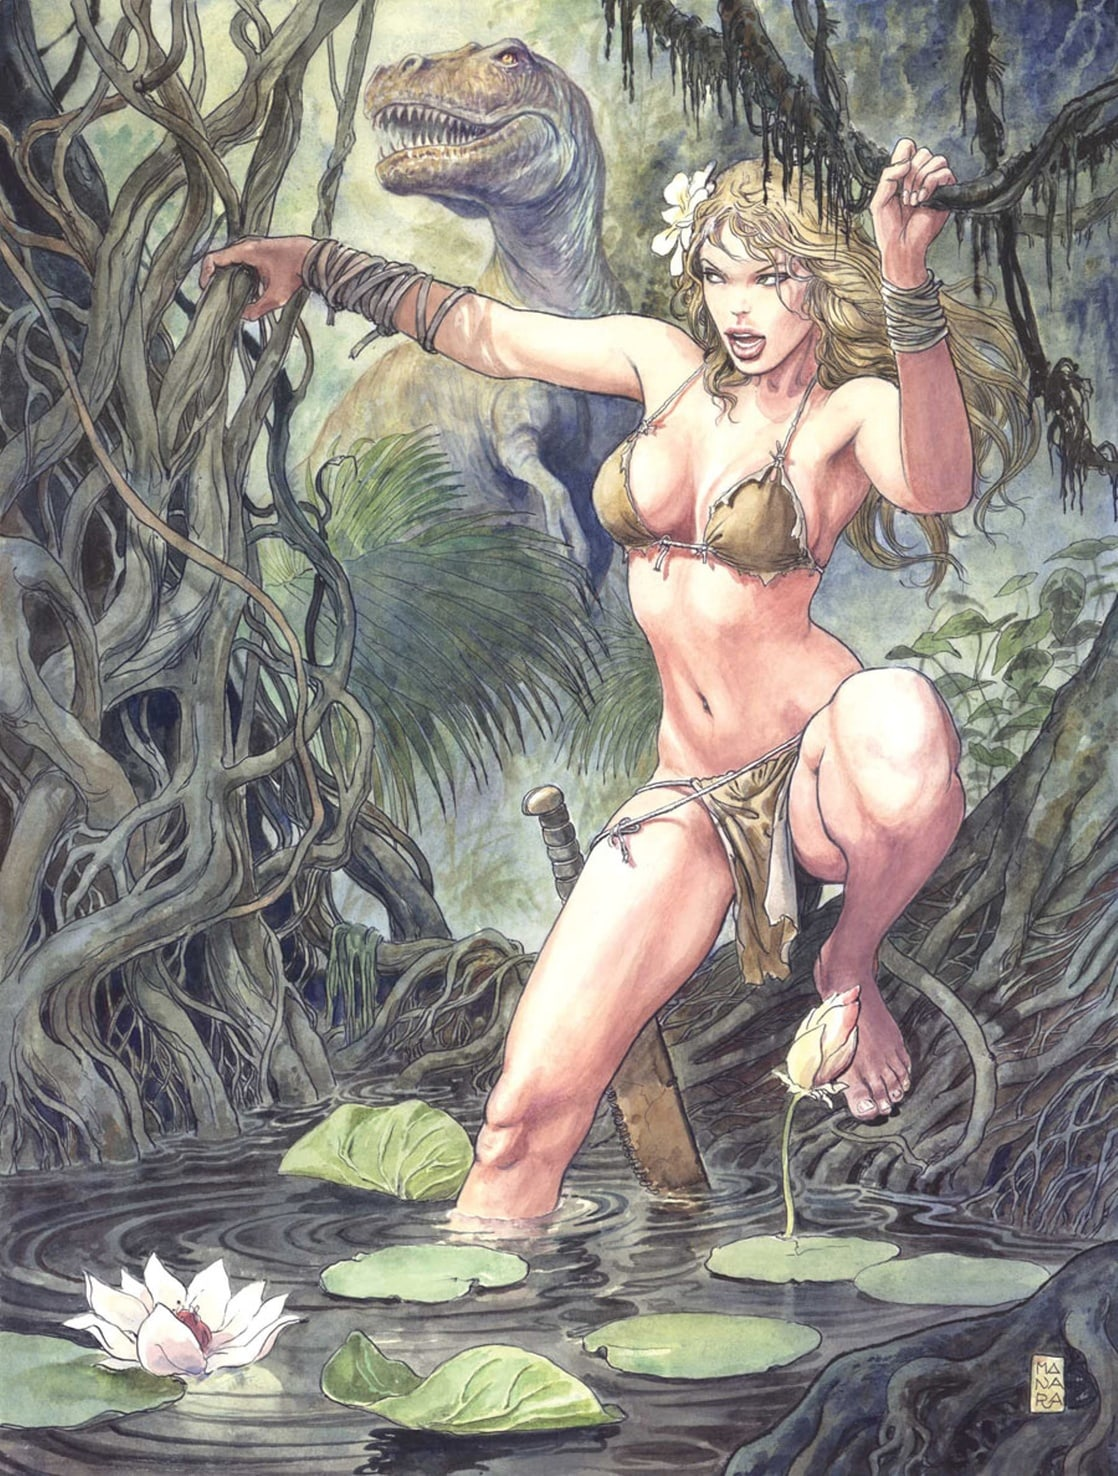 Shanna returns to Africa to look for her father, and learns he was killed by the Mandrill.